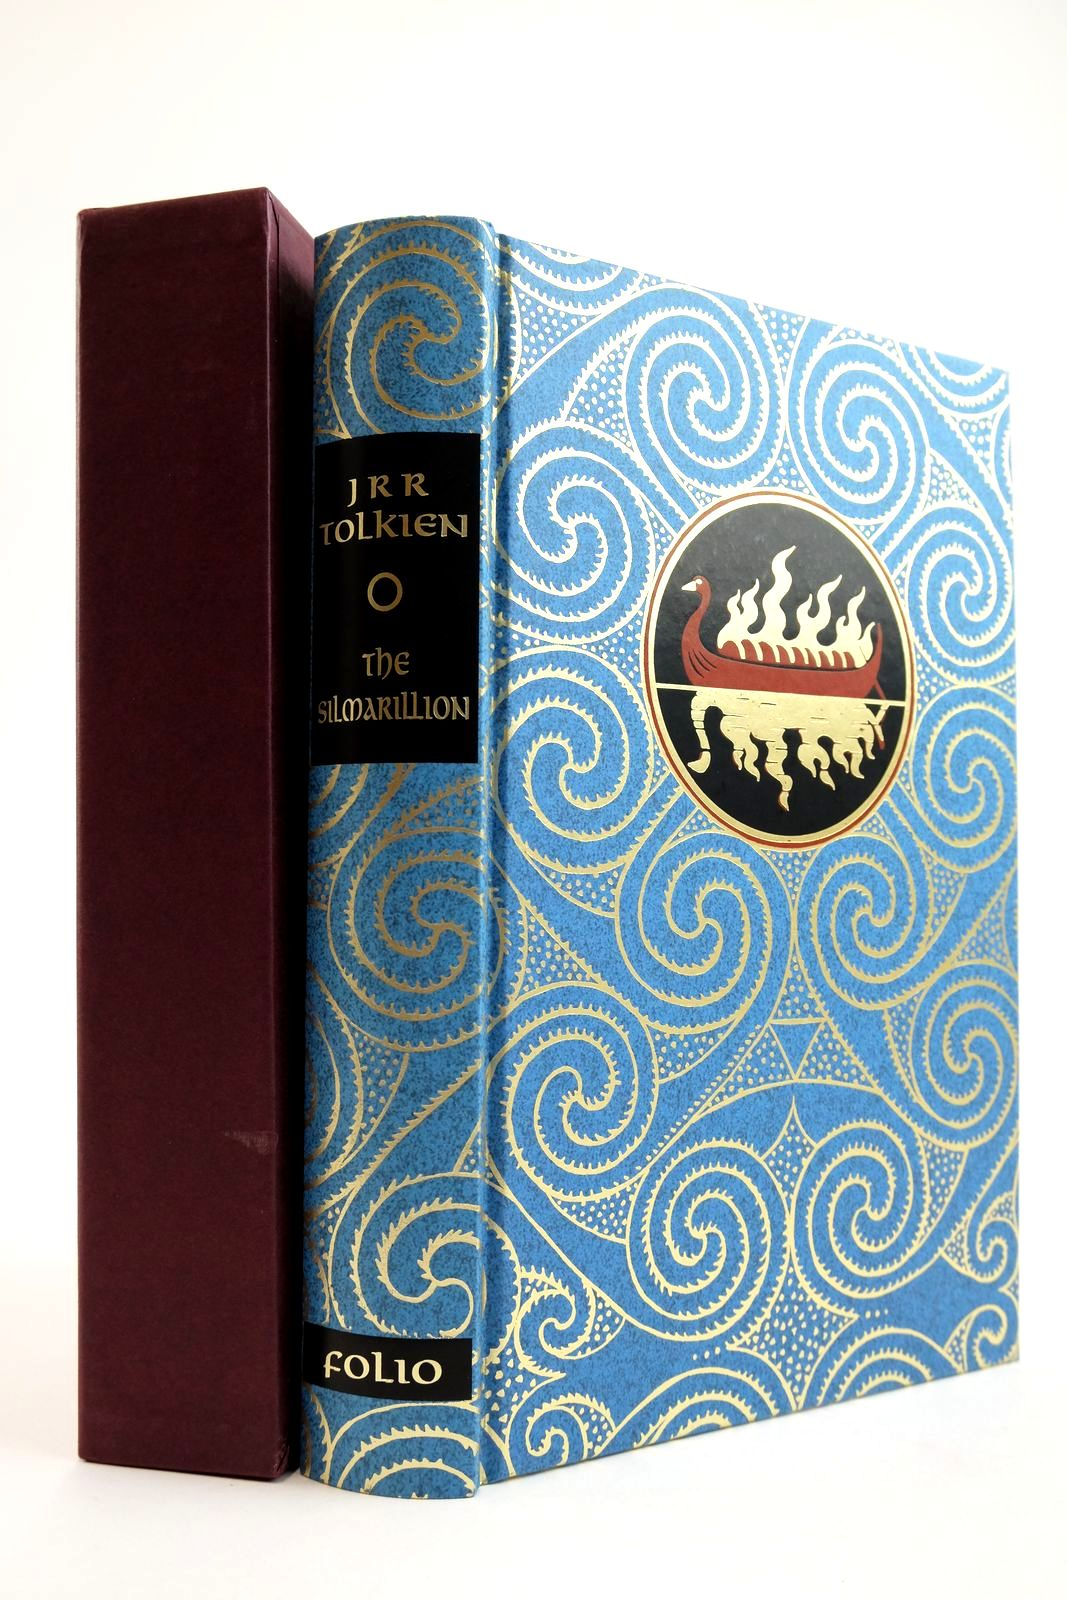 Photo of THE SILMARILLION written by Tolkien, J.R.R. Tolkien, Christopher illustrated by Mosley, Francis published by Folio Society (STOCK CODE: 2133595)  for sale by Stella & Rose's Books